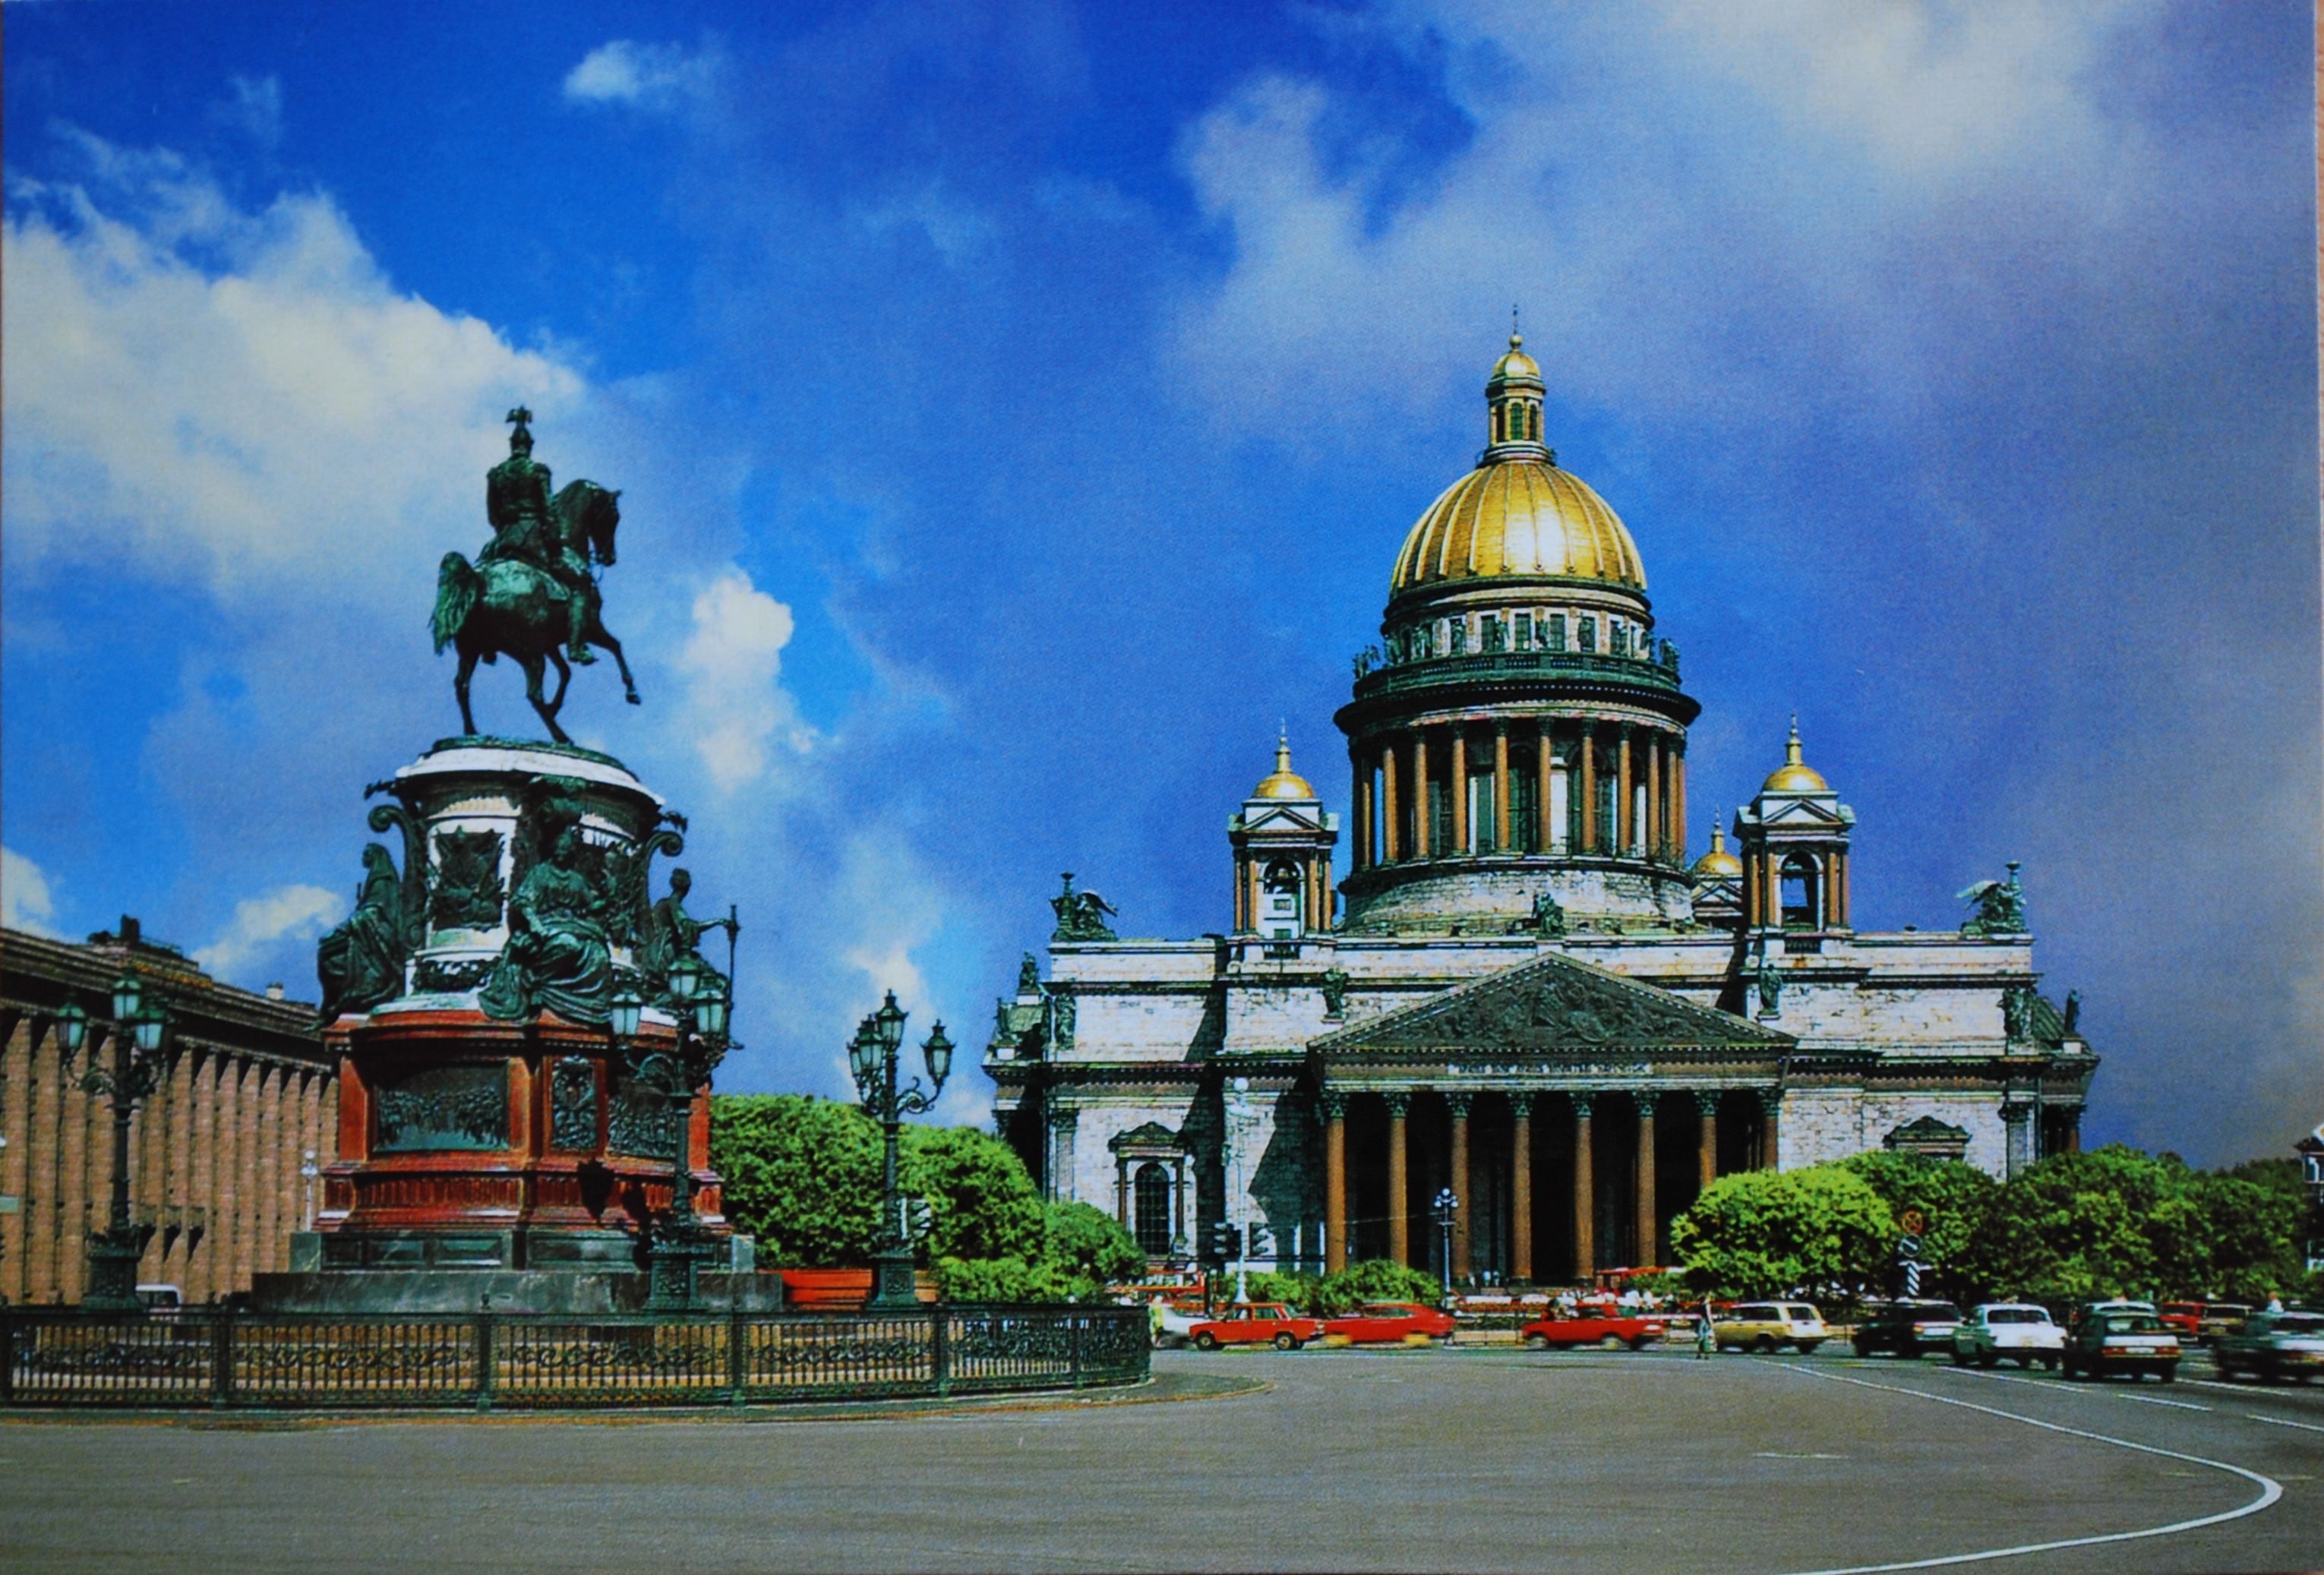 St. Isaacs Square - one of the main attractions of St. Petersburg